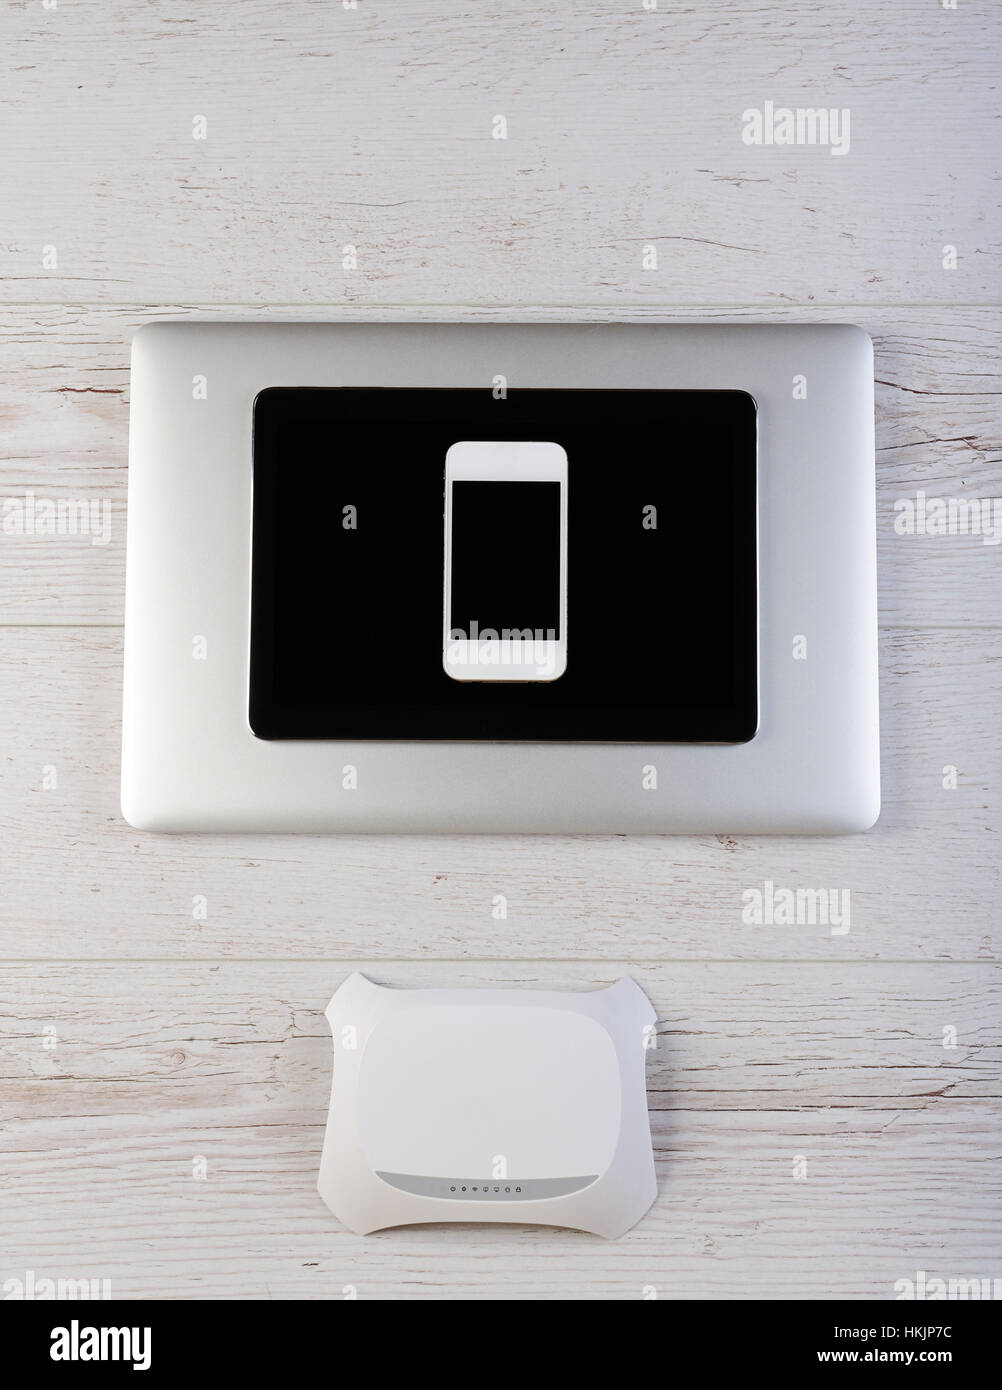 Wifi modem router connect laptop tablet and smartphone stock photo wifi modem router connect laptop tablet and smartphone keyboard keysfo Image collections